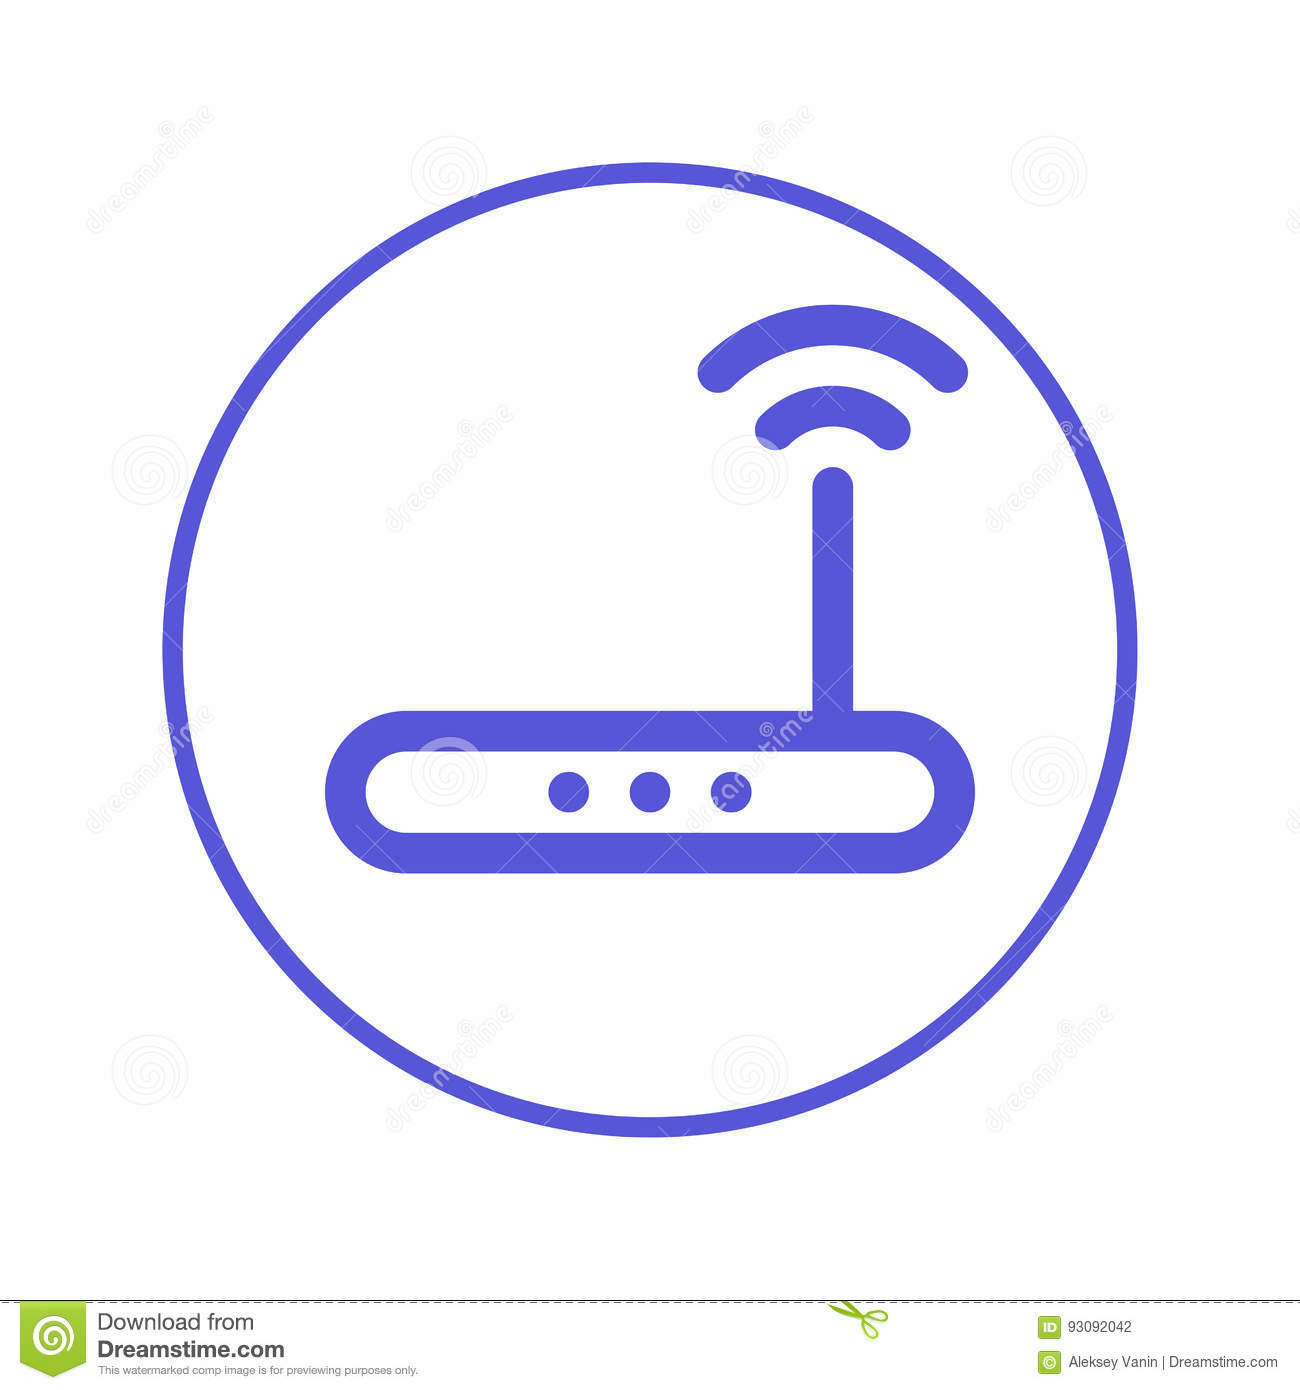 wireless broadband router essay Shop cdw for wireless networking including routers, wireless access points, wireless adapters and more - all from our trusted partners  wireless broadband routers .